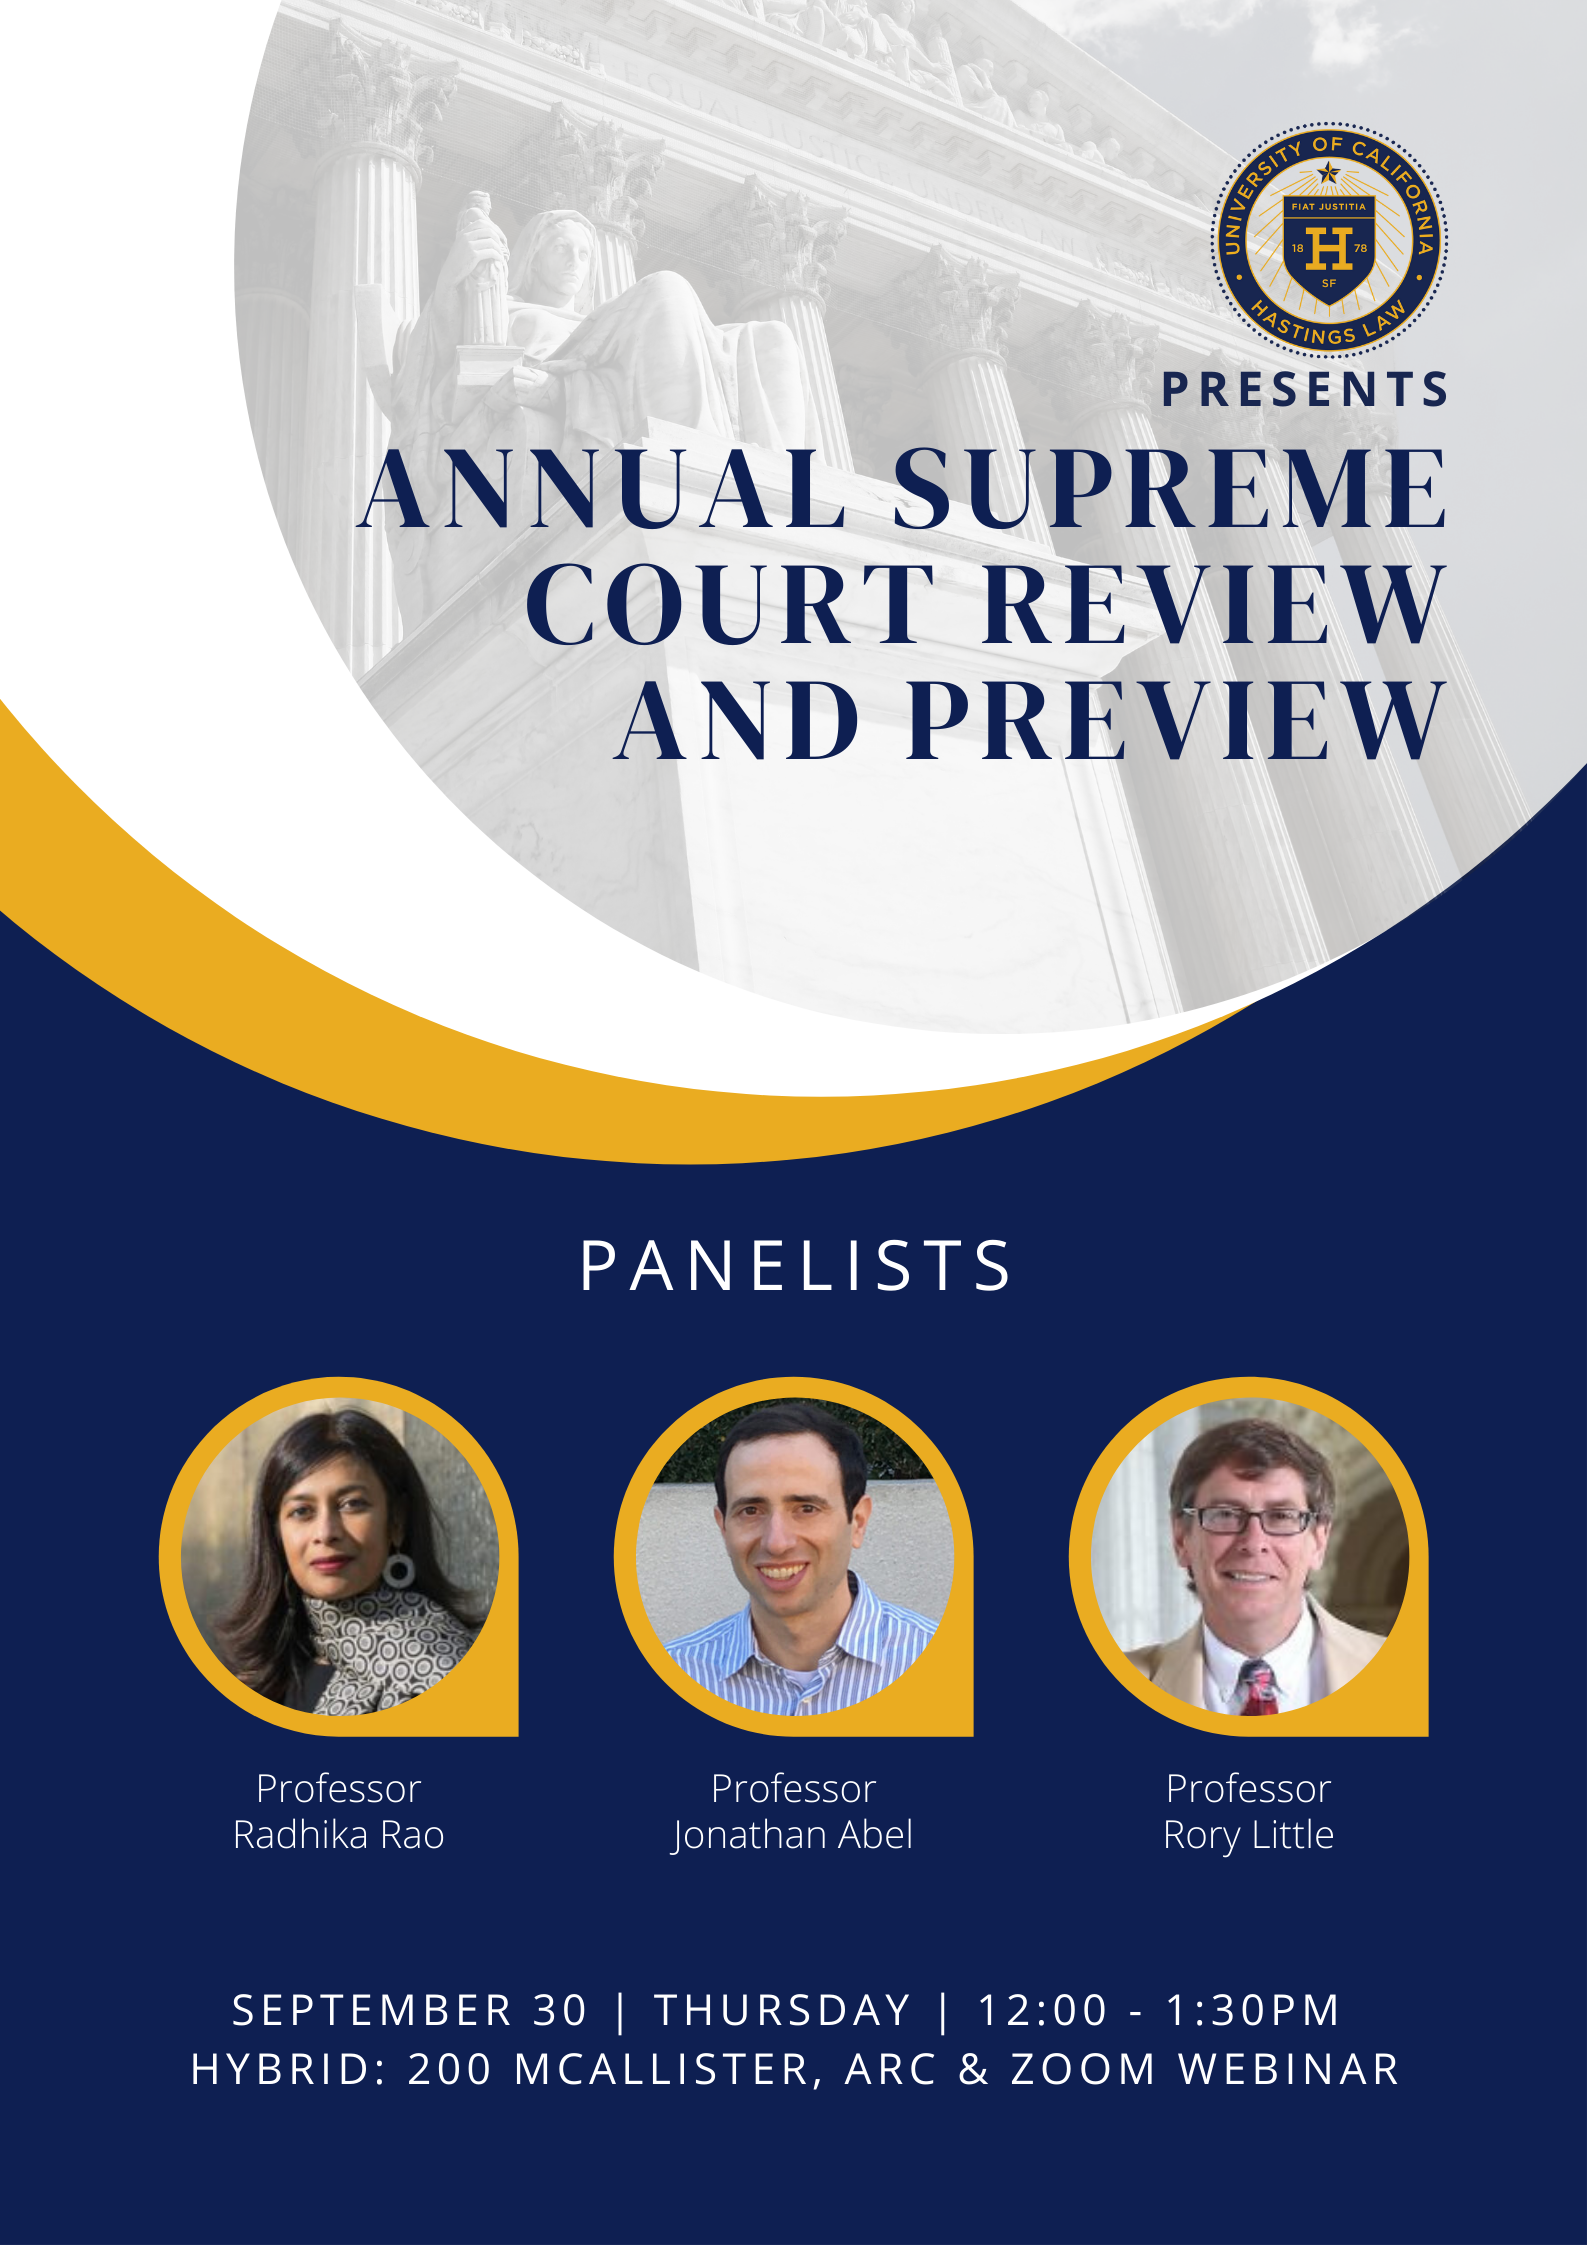 Annual Supreme Court Review and Preview event flyer